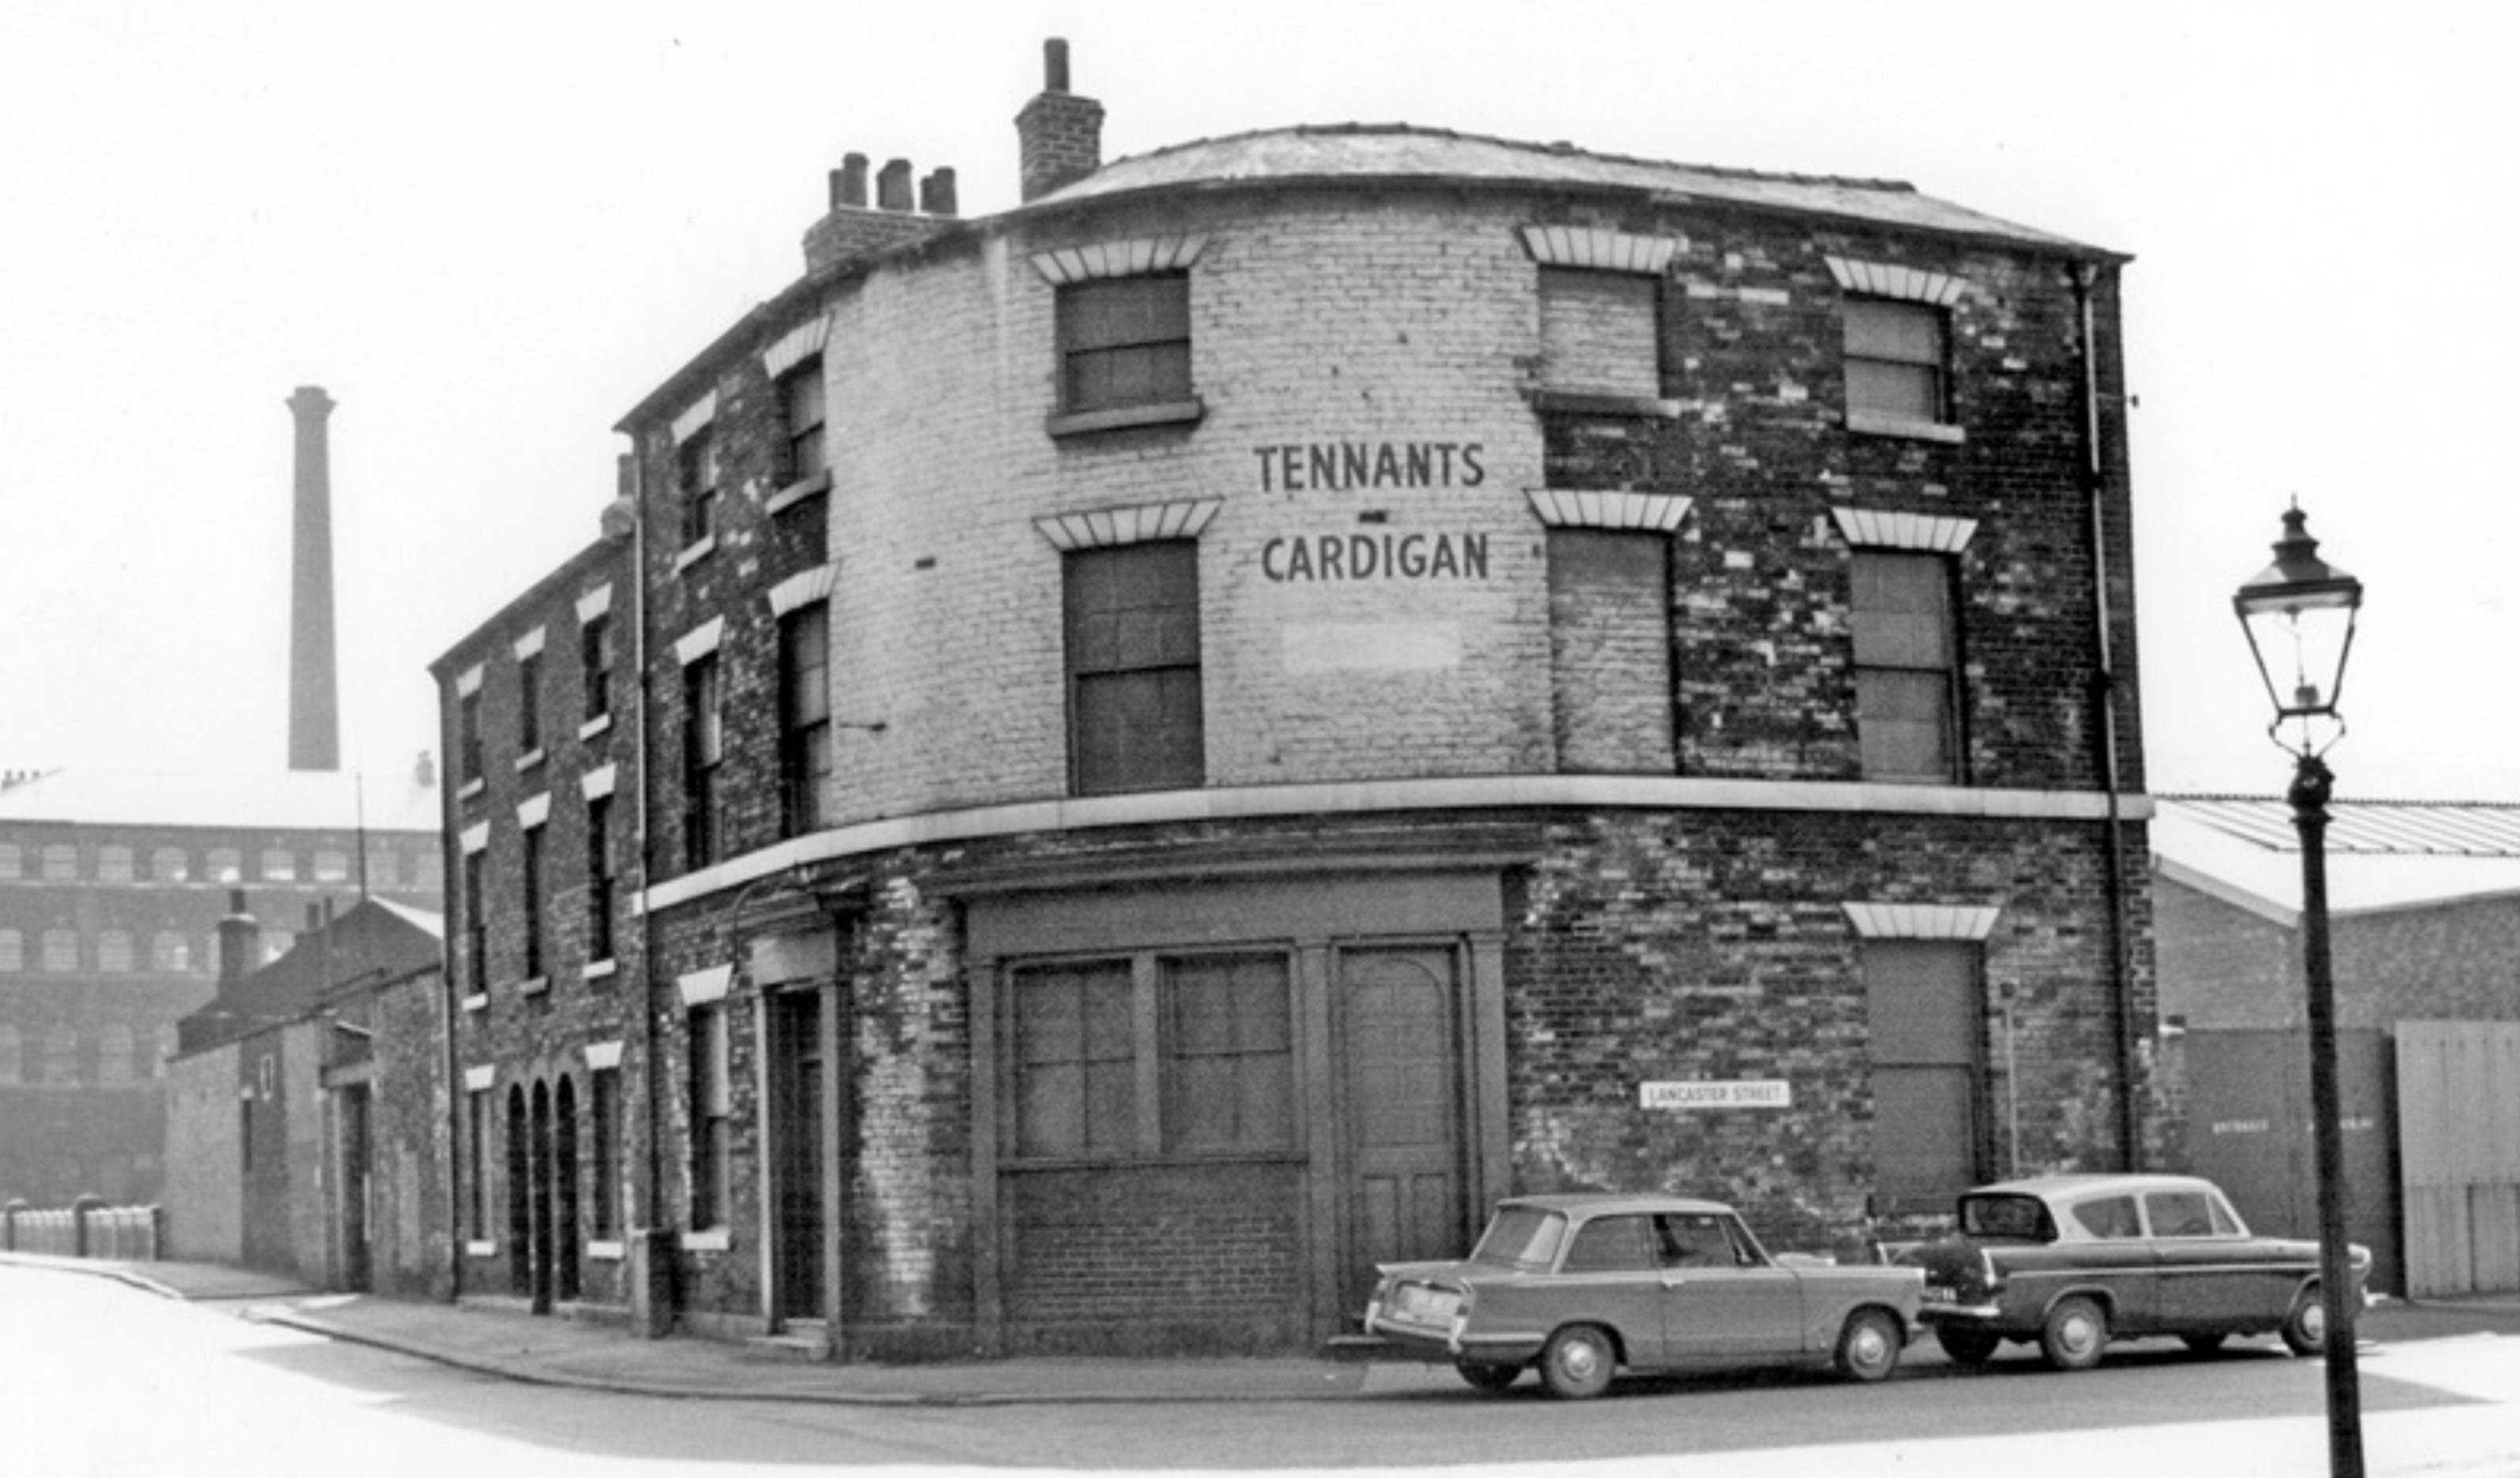 The Cardigan Tavern in Neepsend/Kelham